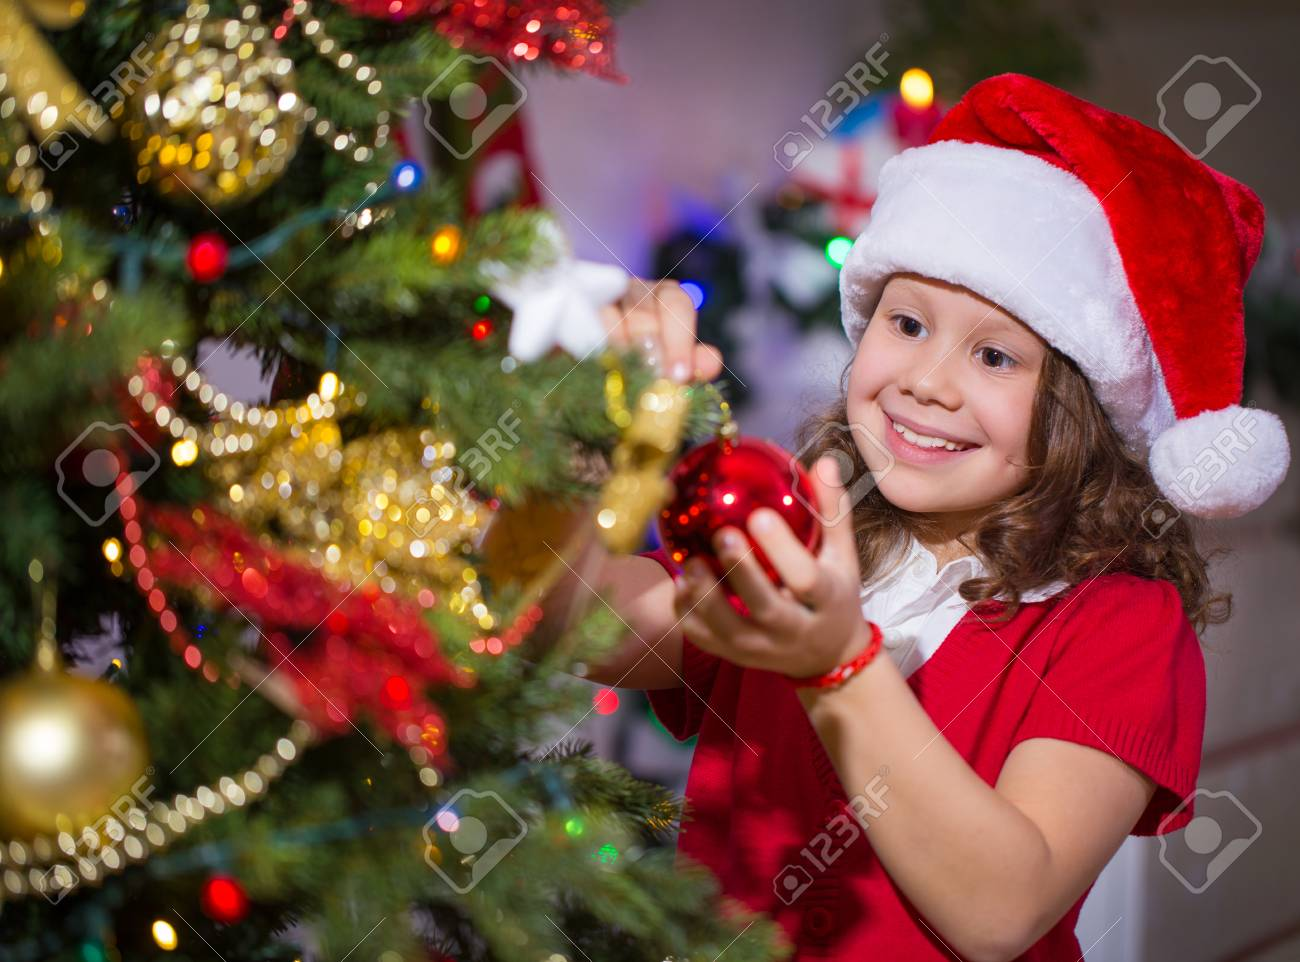 30b55e8b400da Little girl in Santa hat decorates a Christmas tree Stock Photo - 69532368